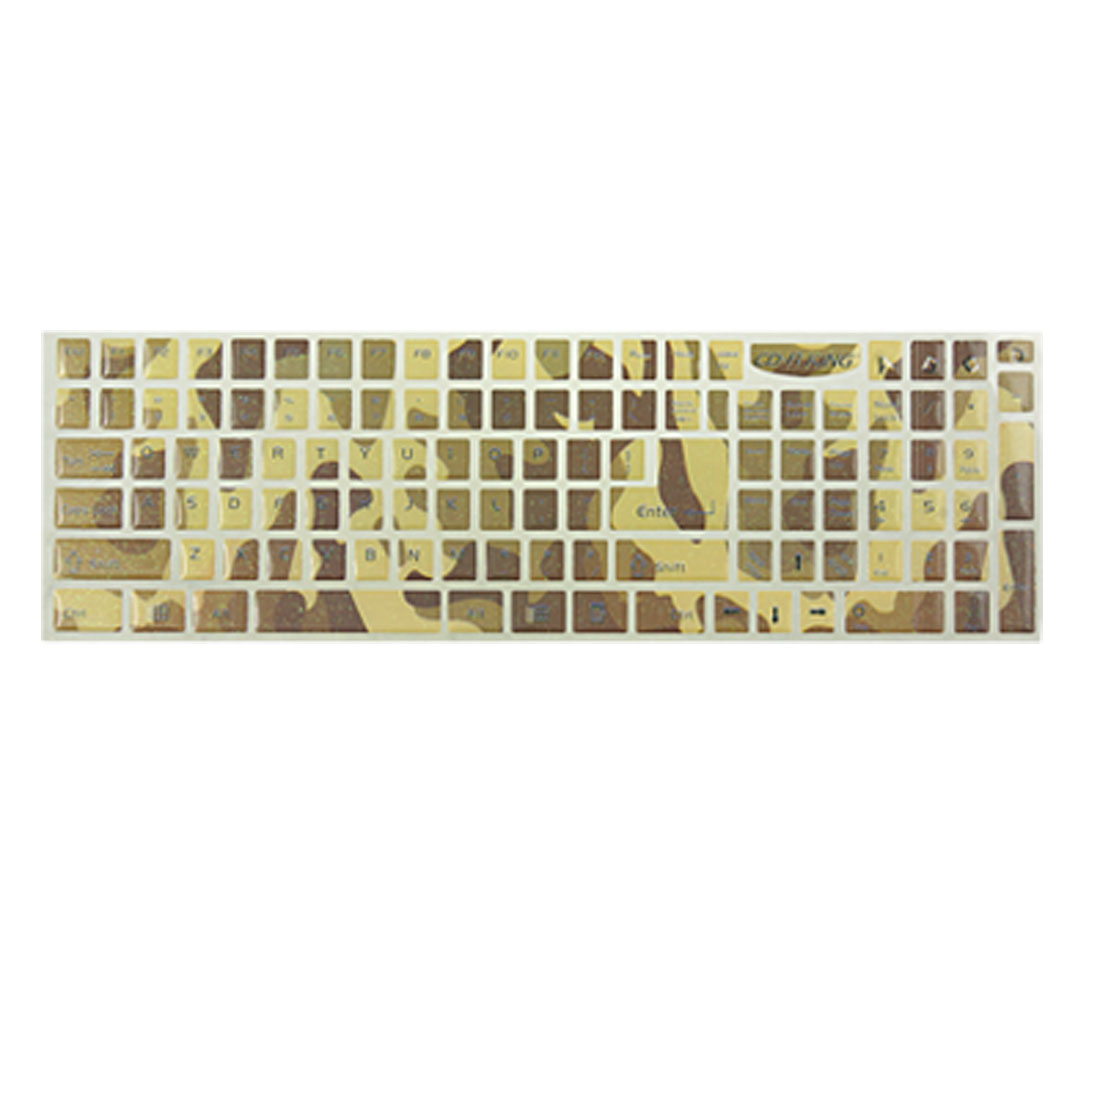 Camouflage Print Glittery Keyboard Sticker for Computer